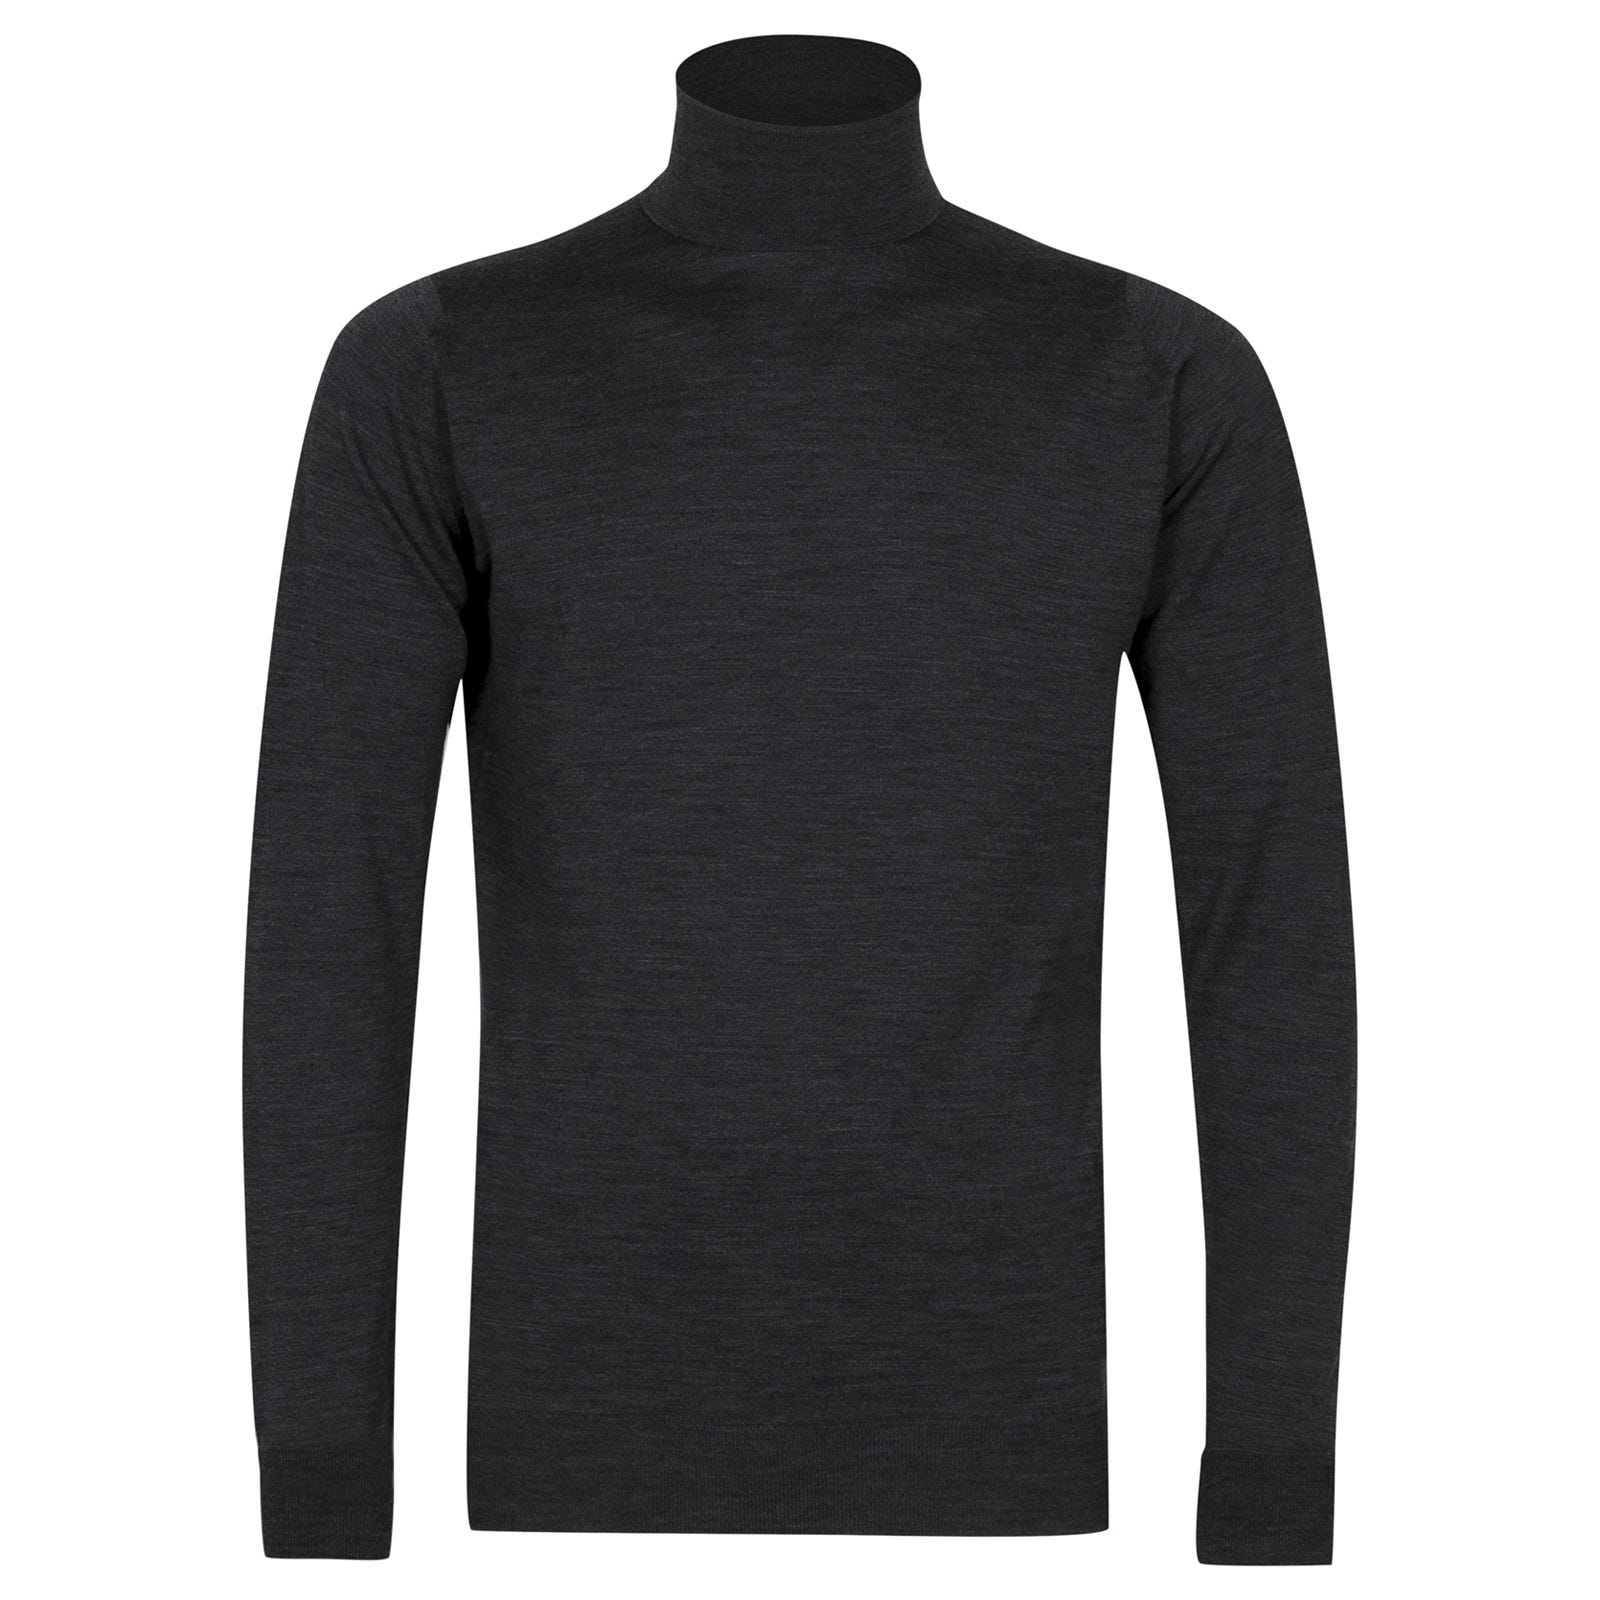 John Smedley richards Merino Wool Pullover in Charcoal-S